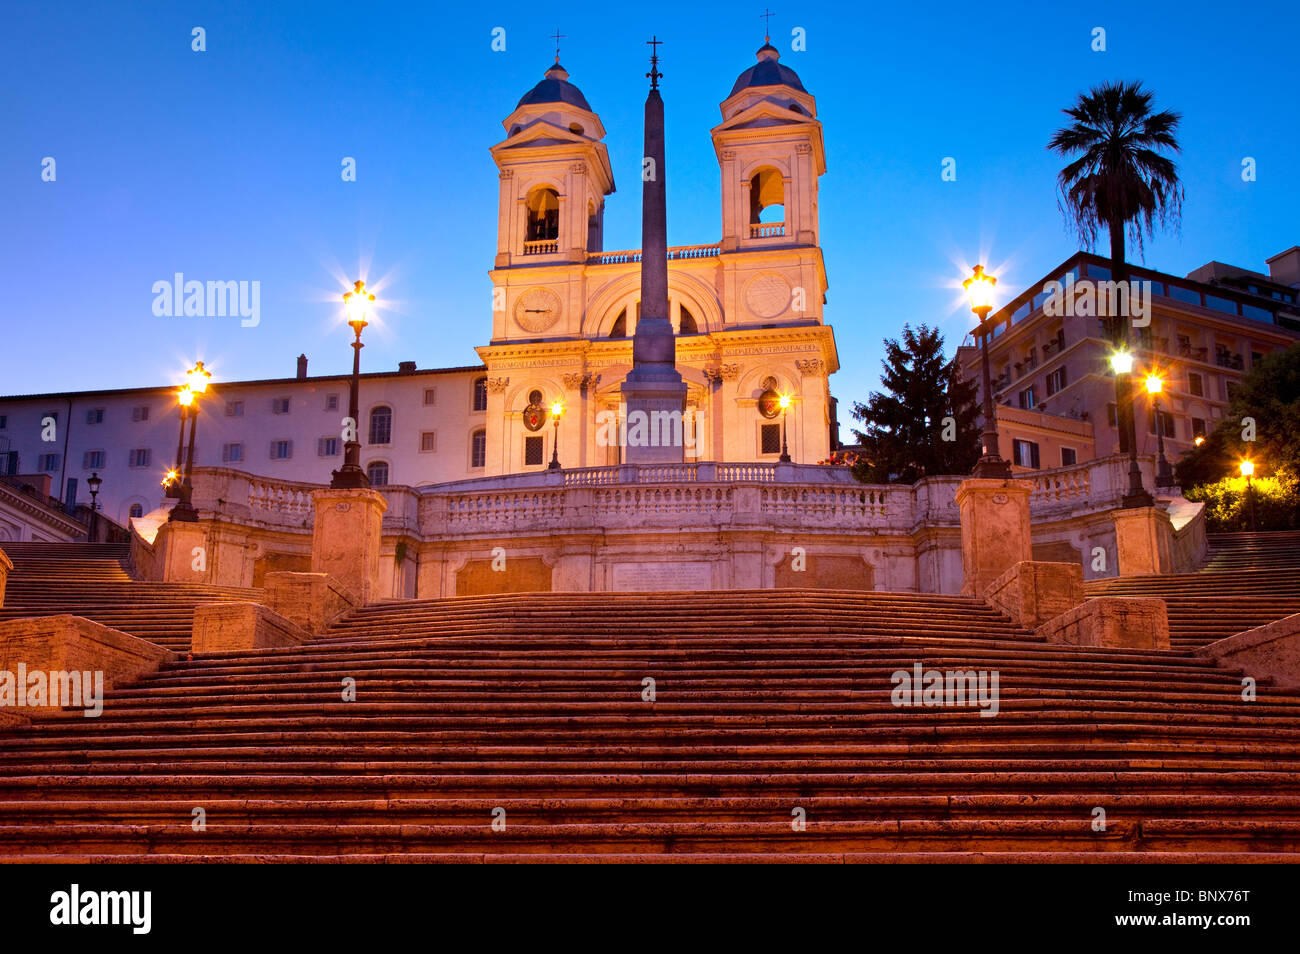 Just before dawn at the Spanish Steps with Trinità dei Monti beyond, Rome Lazio Italy - Stock Image